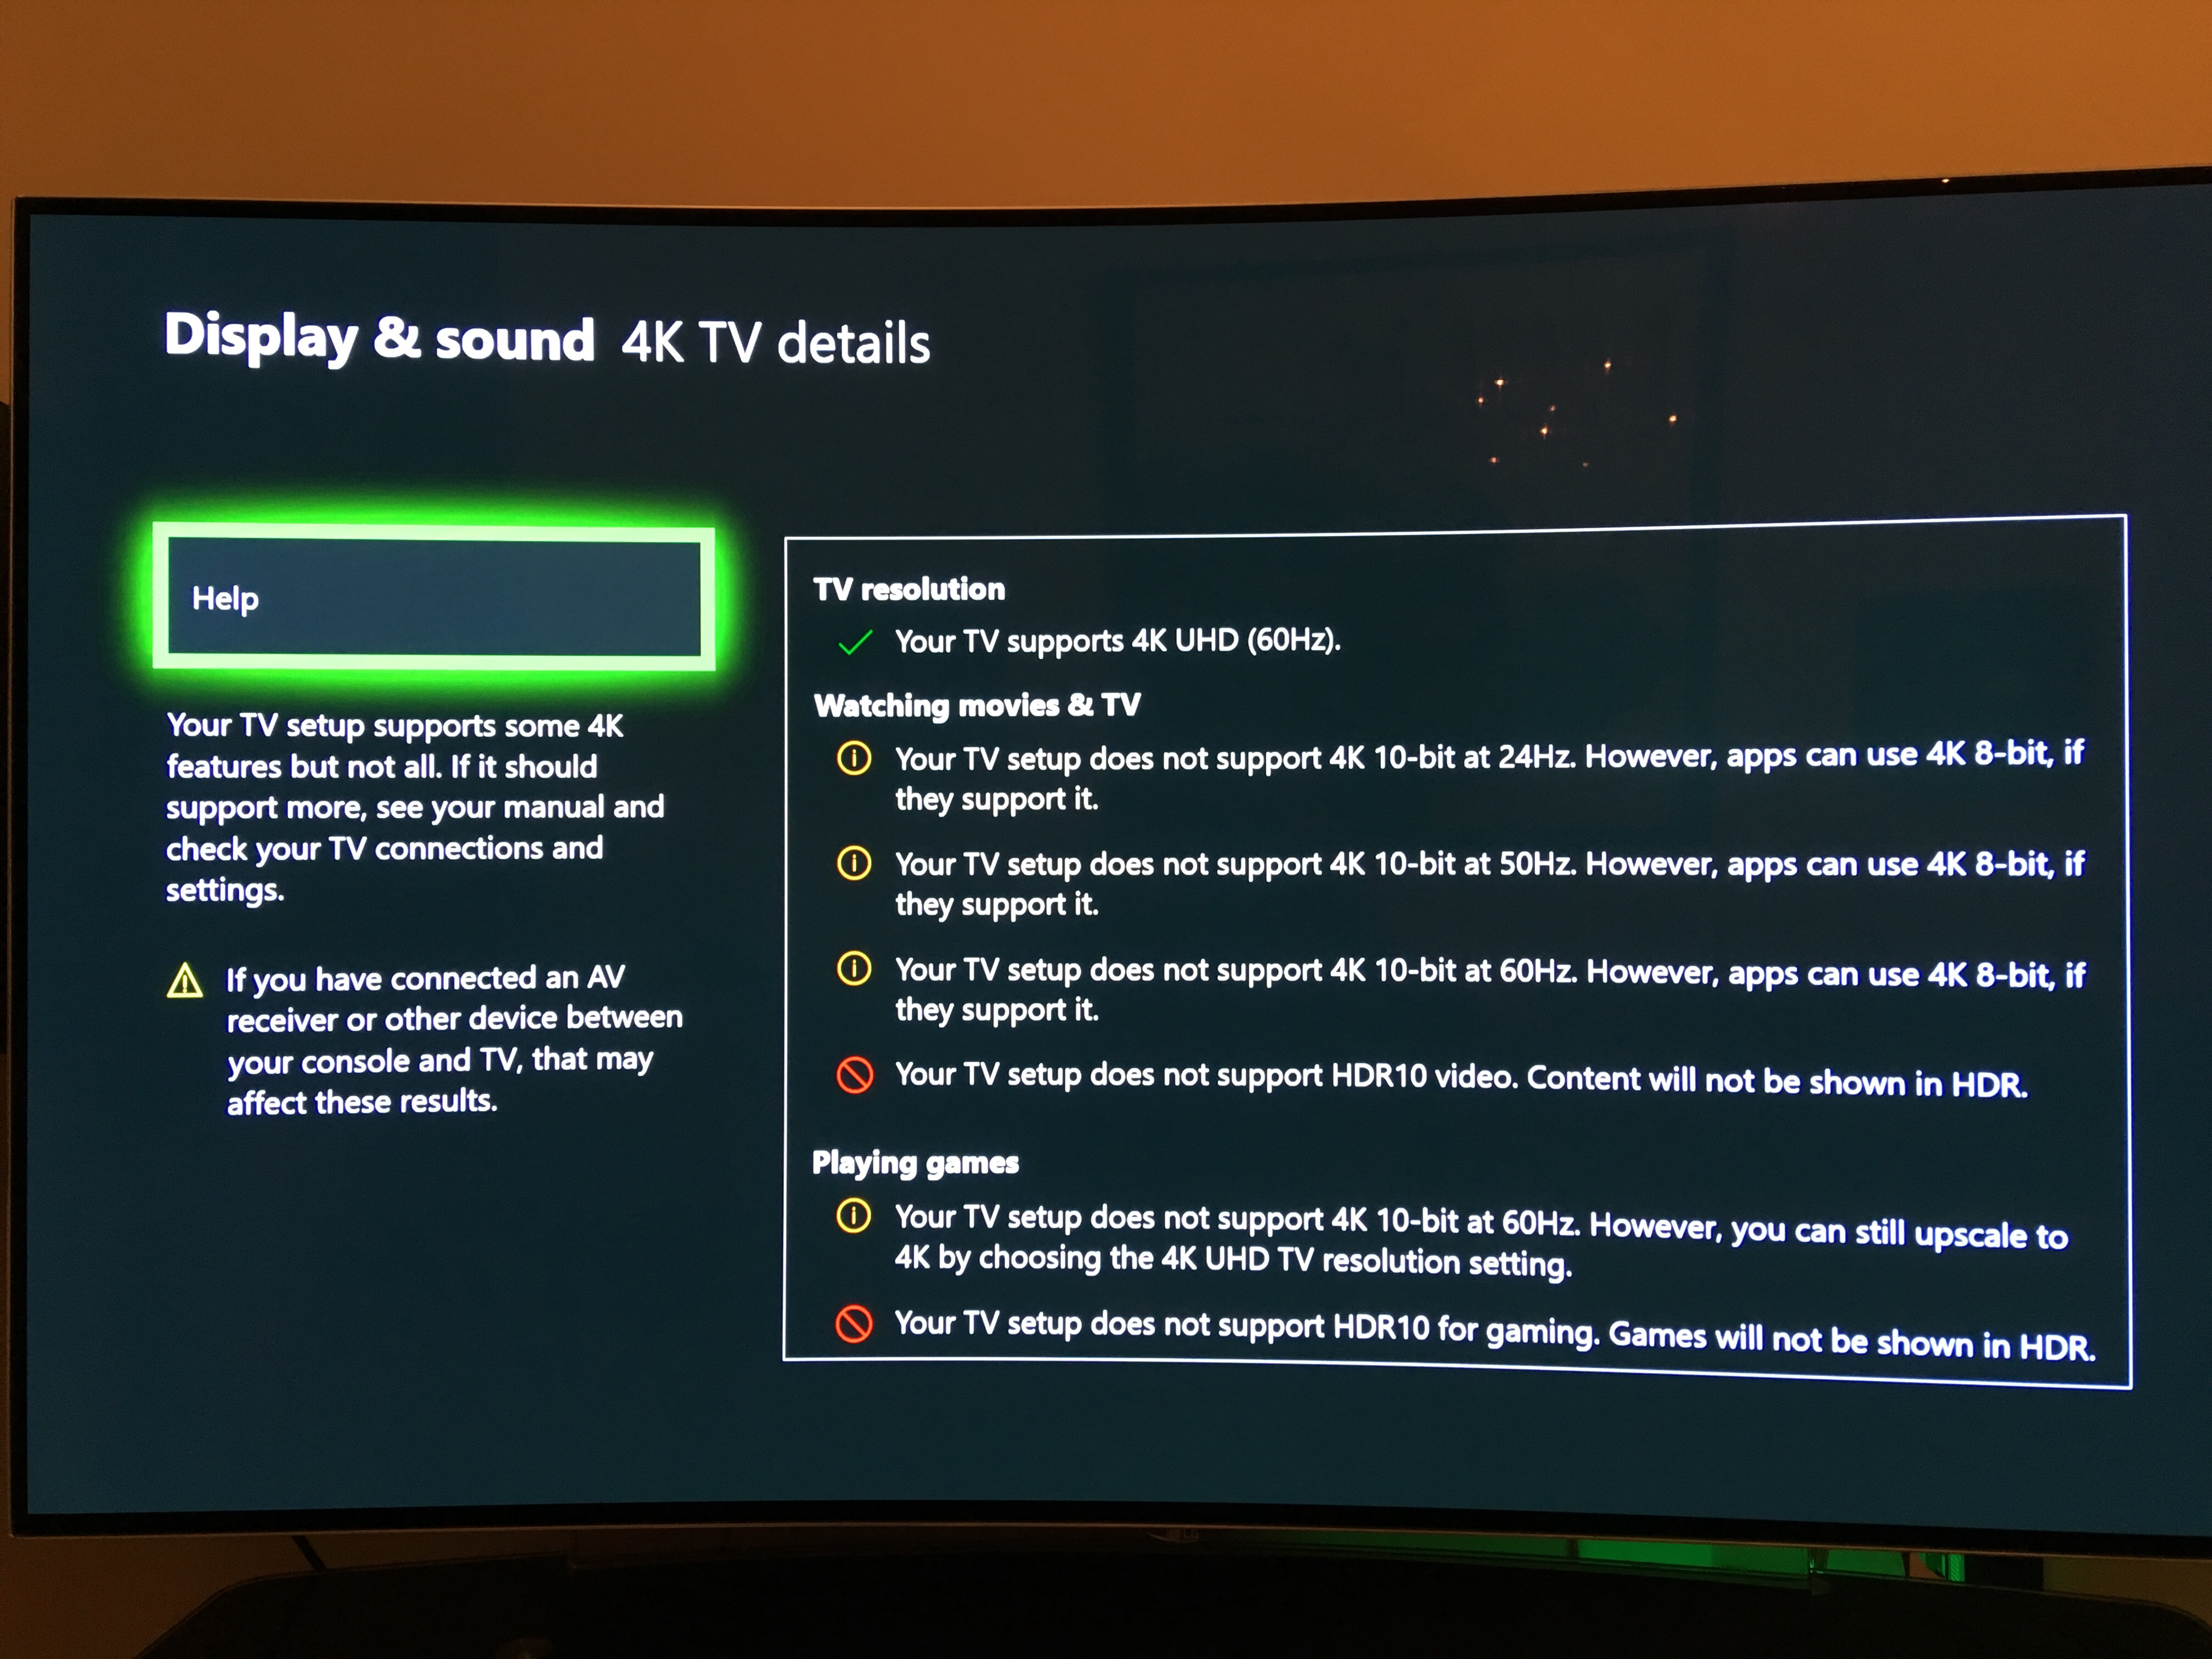 Answered - Xbox One X 4K problems with TV & AV receiver